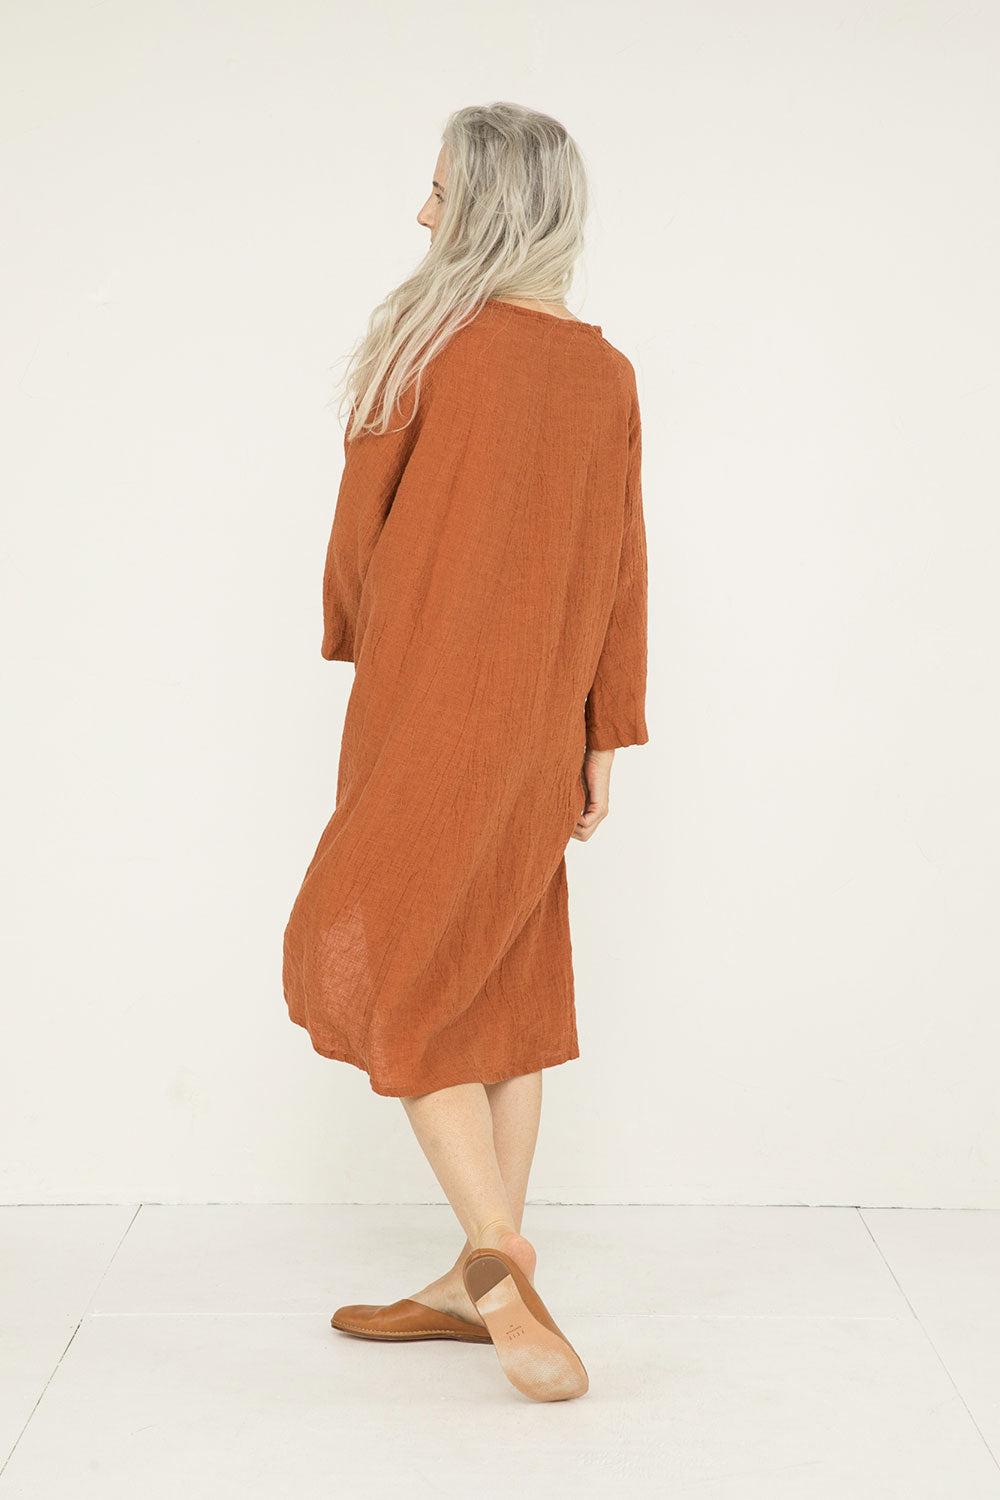 Artist Dress in Linen Gauze Amber - Kendall-OSM